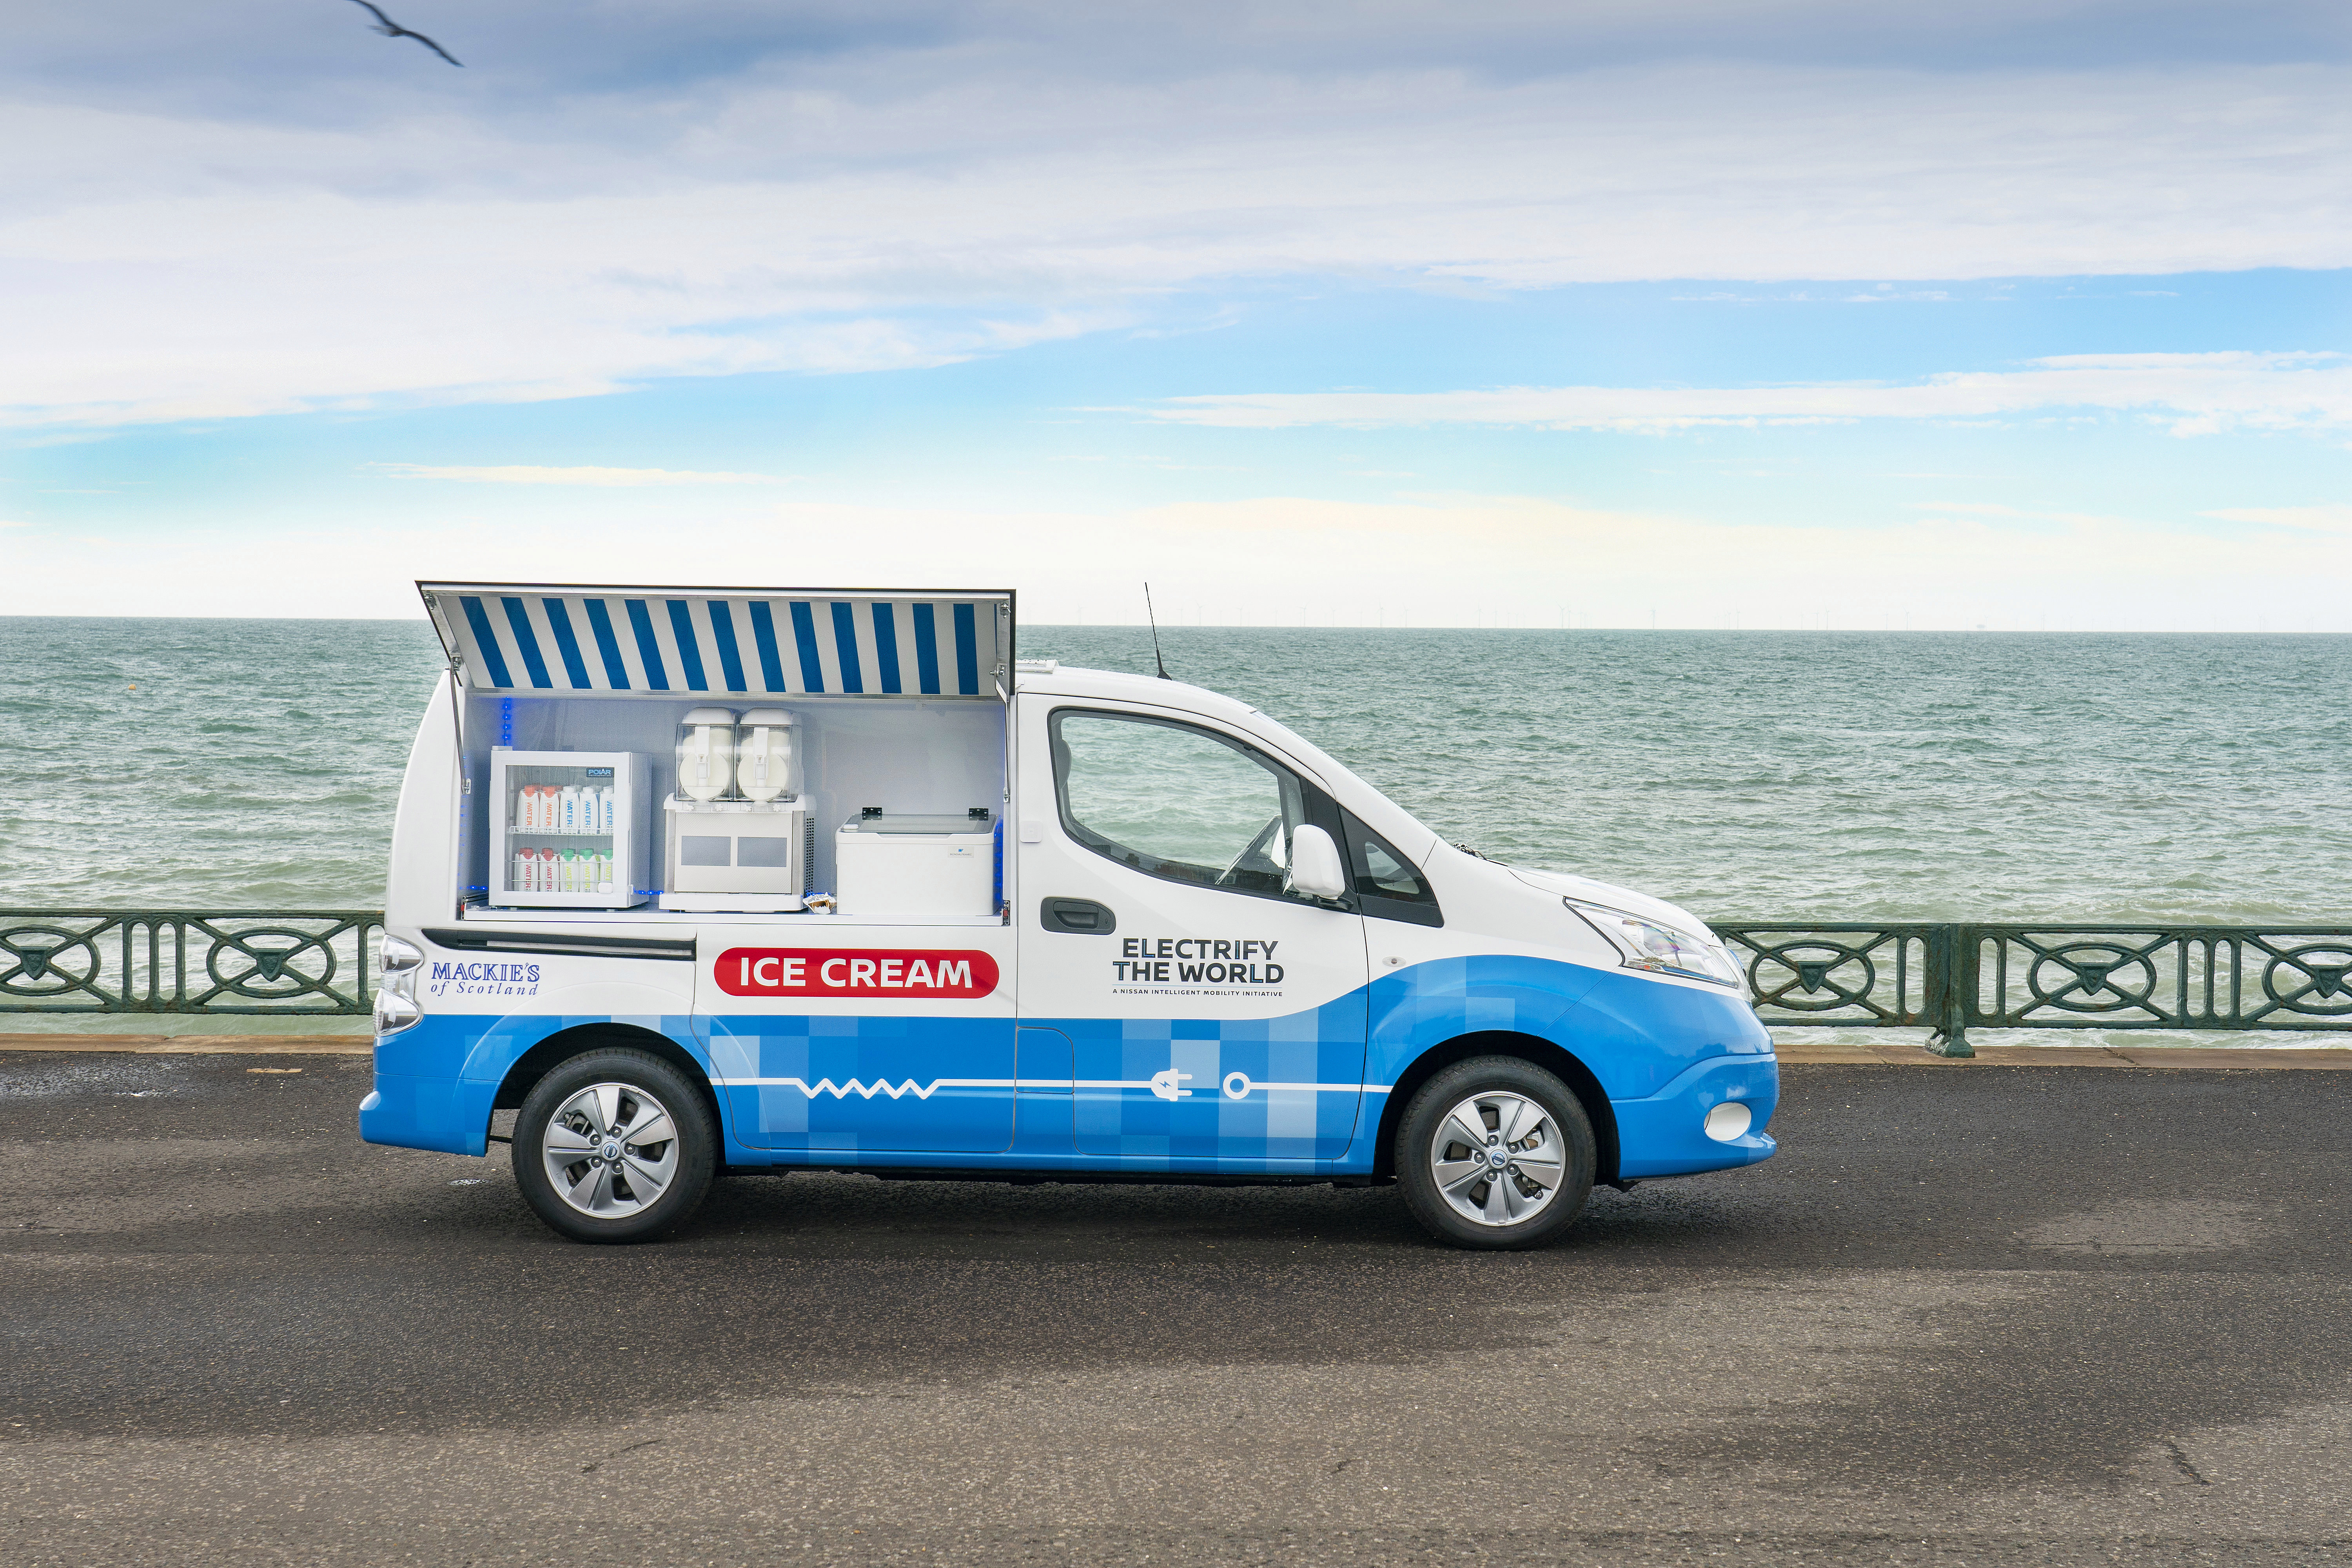 Nissan created an electric ice cream van, complete with a fridge, freezer, solar panels and soft-serve machine